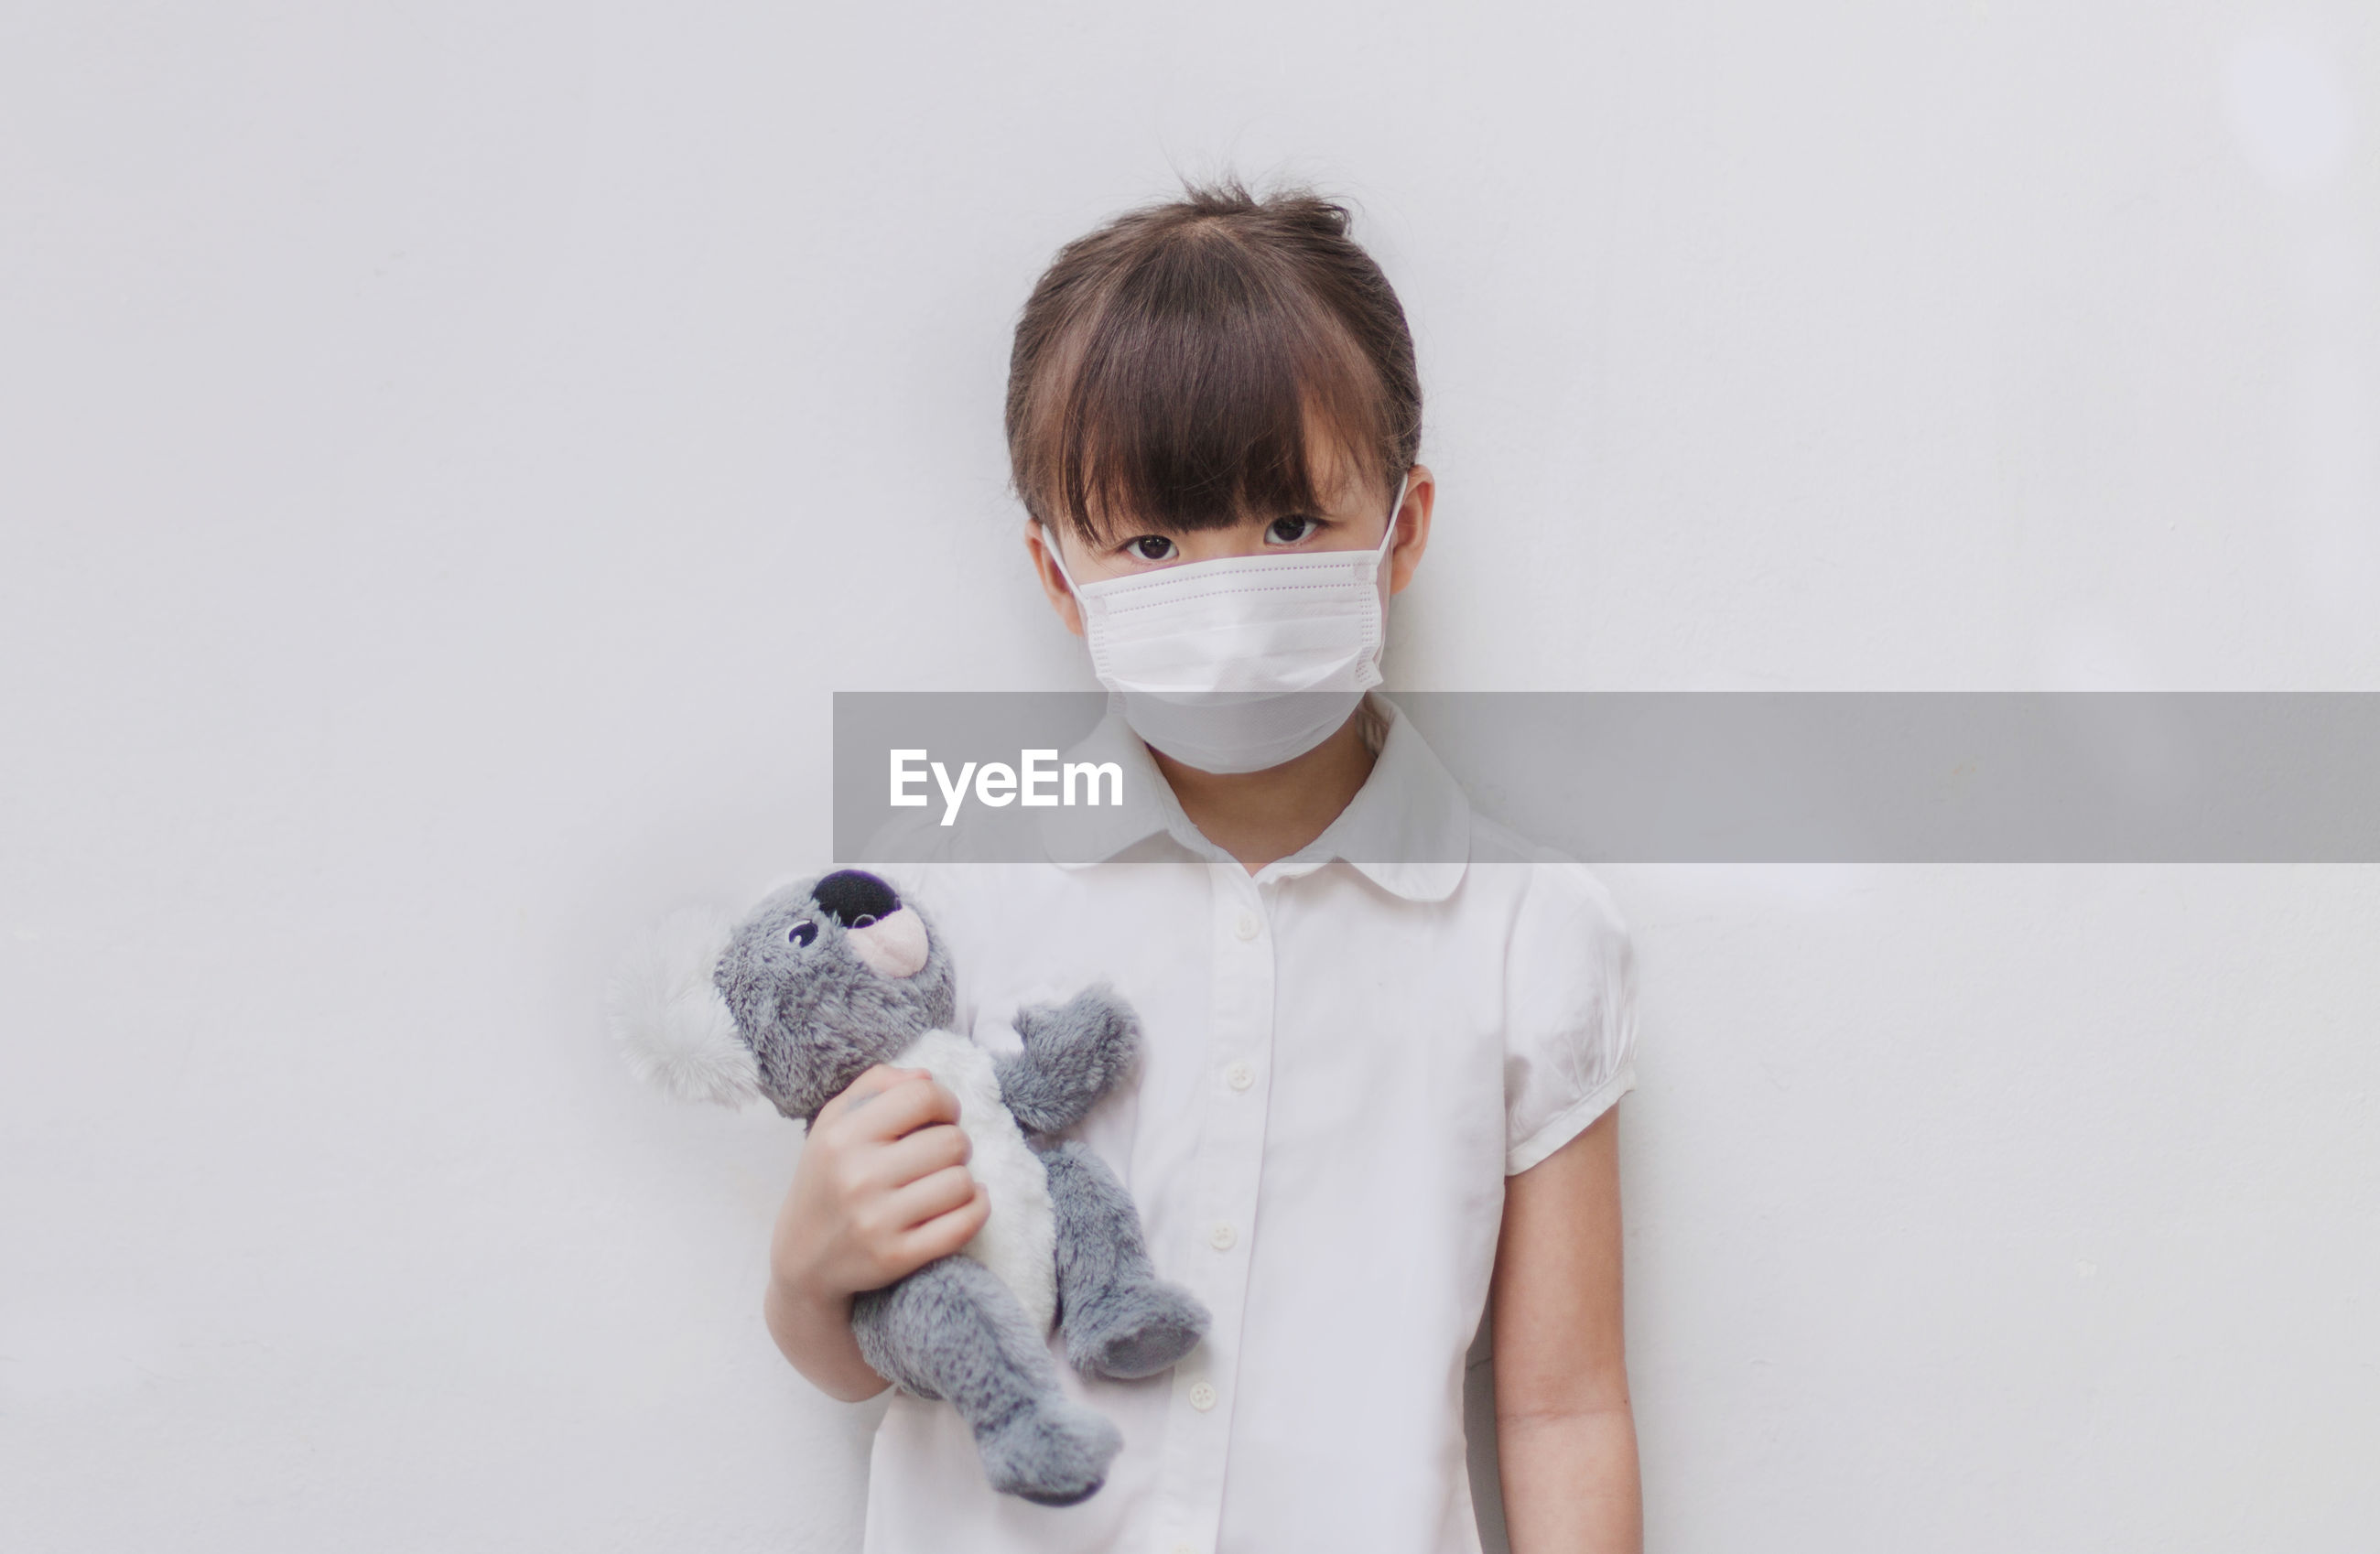 Portrait of girl wearing mask holding stuffed toy against white background